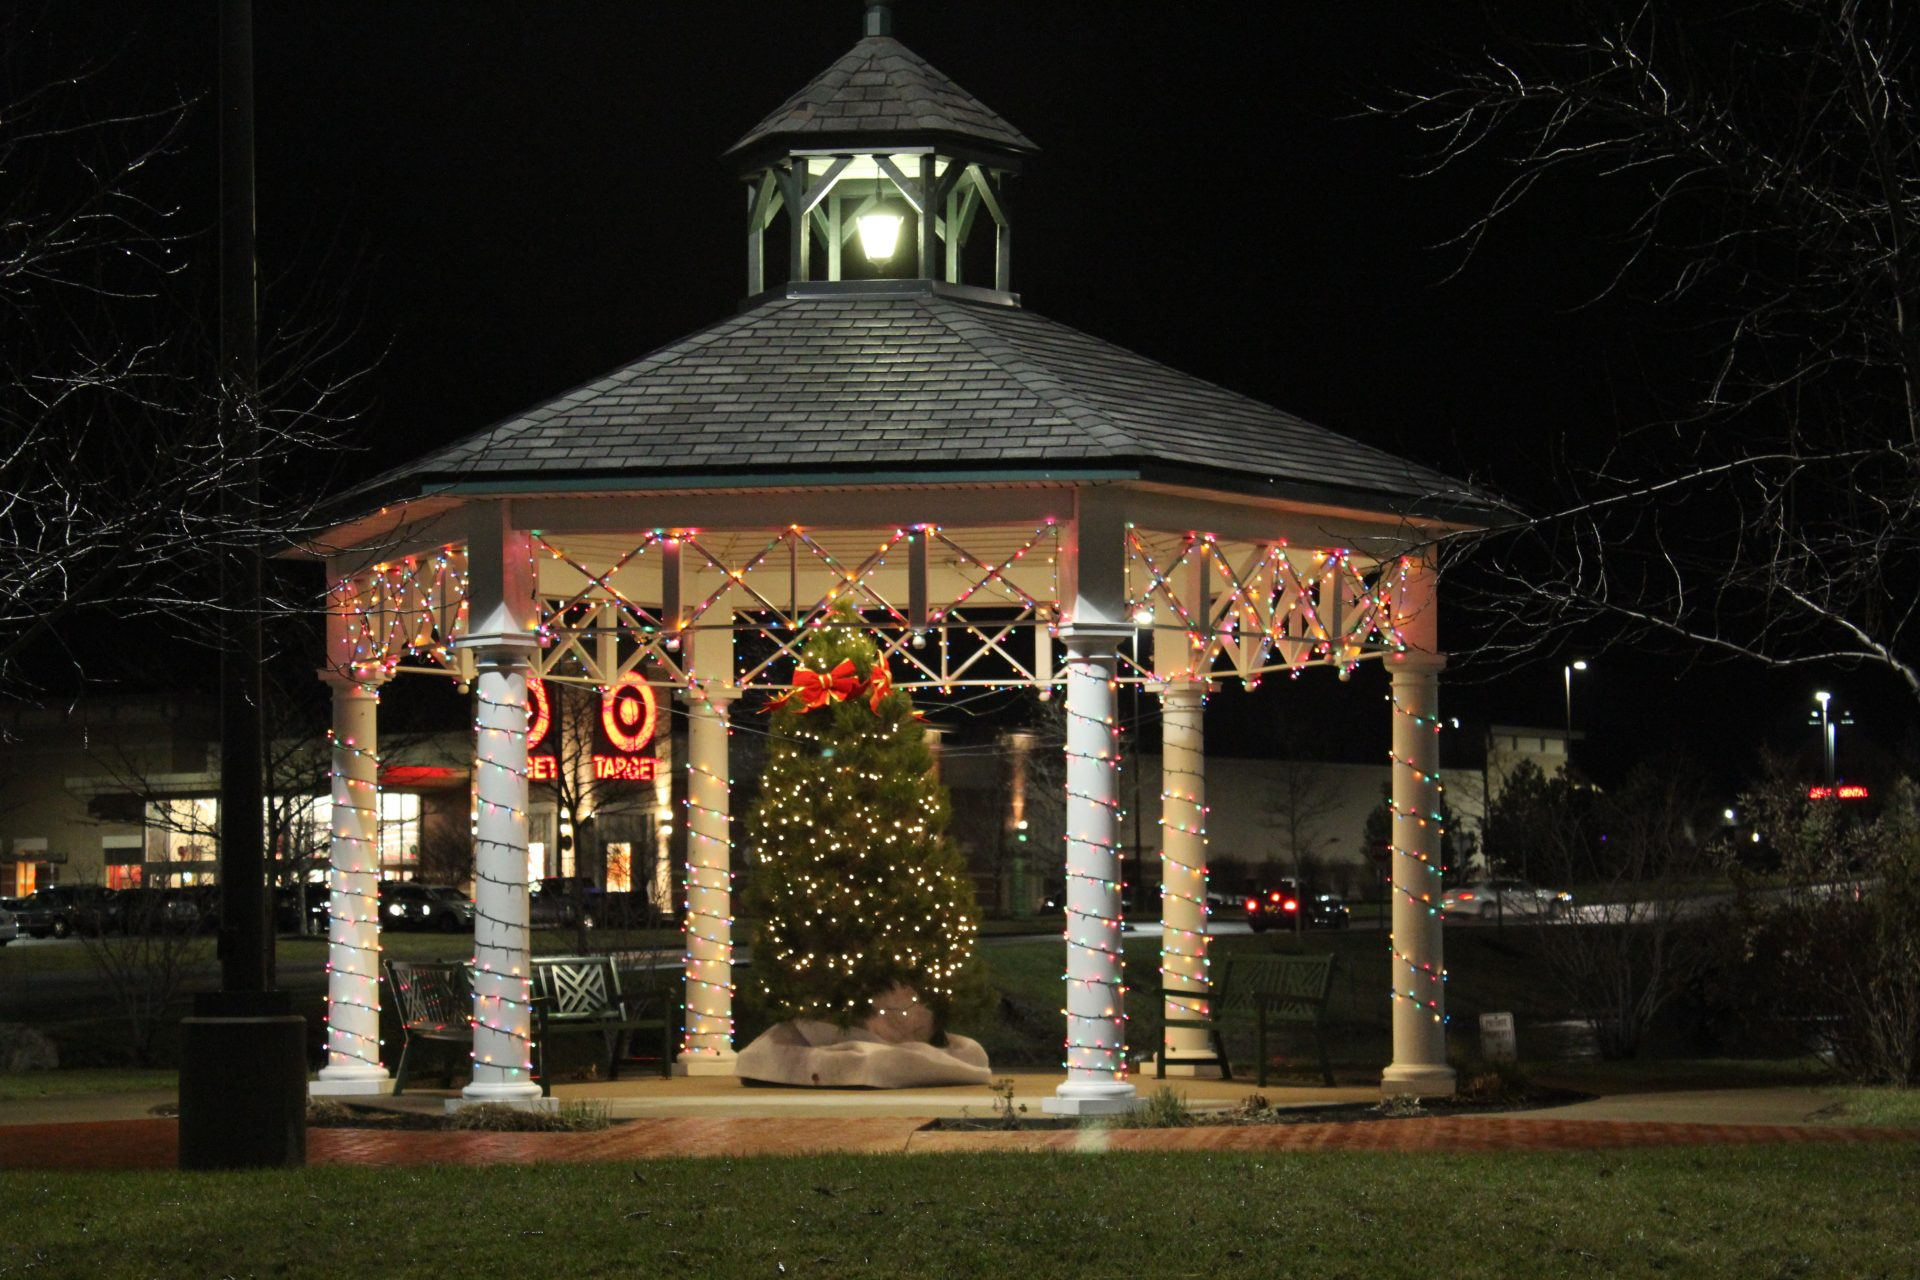 Webster Square Gazebo